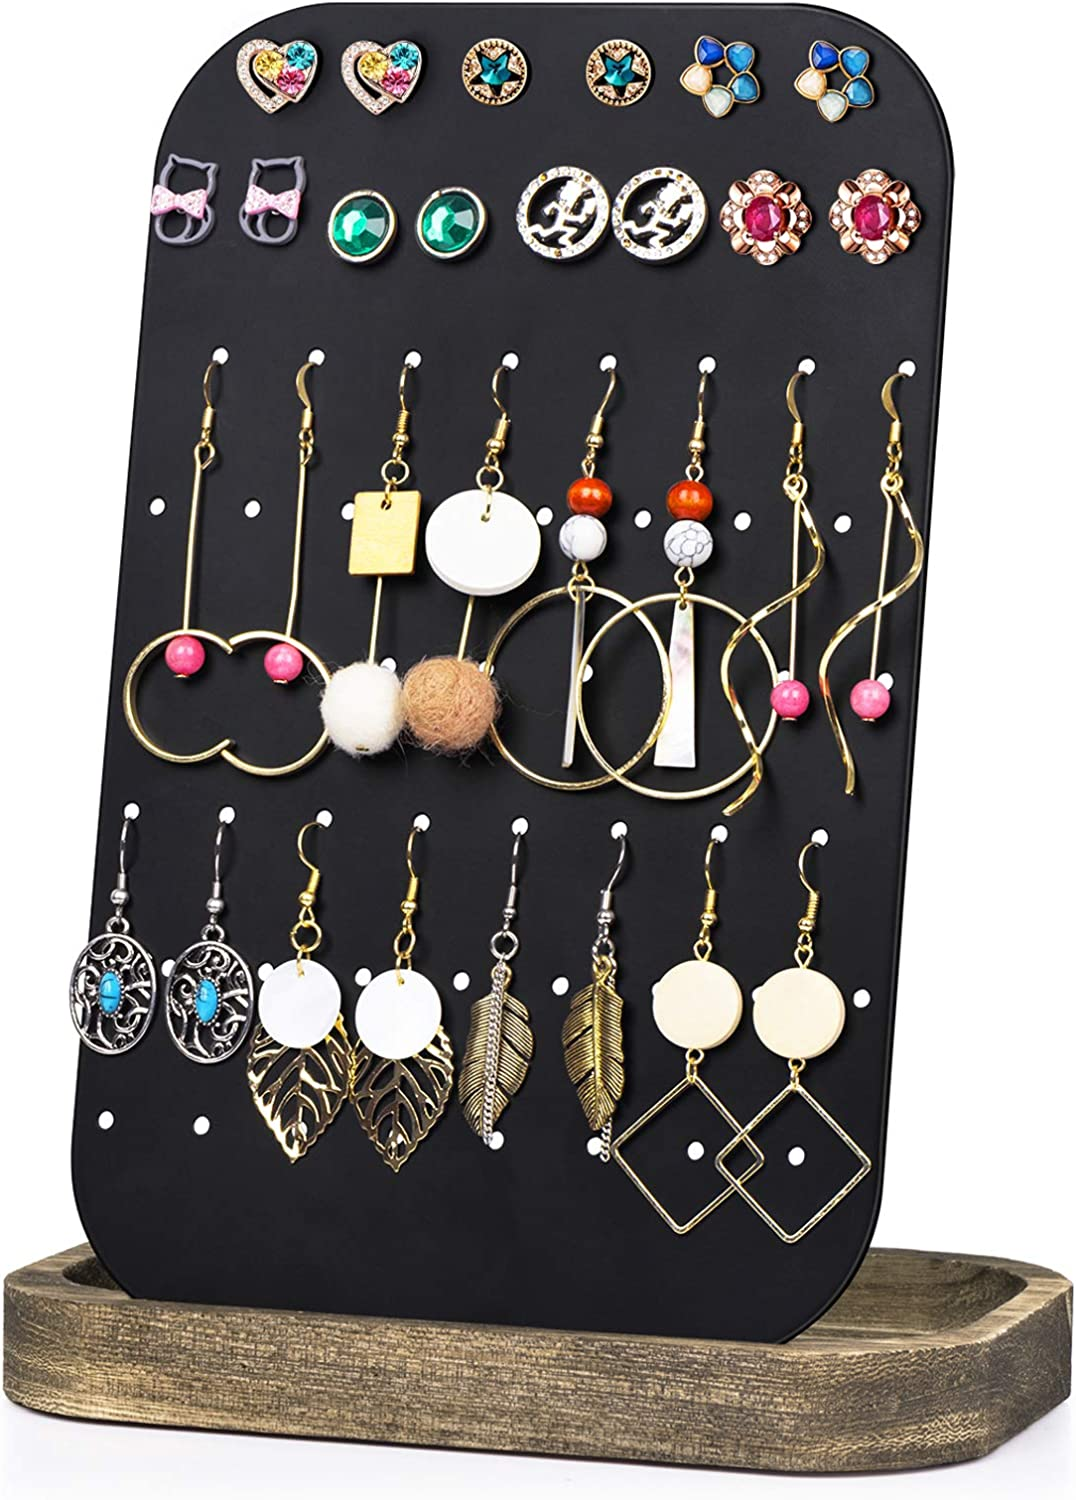 Details about  /48 Hole Jewelry Display Rack Earrings Necklace Ear Studs Stand Organizer Holder